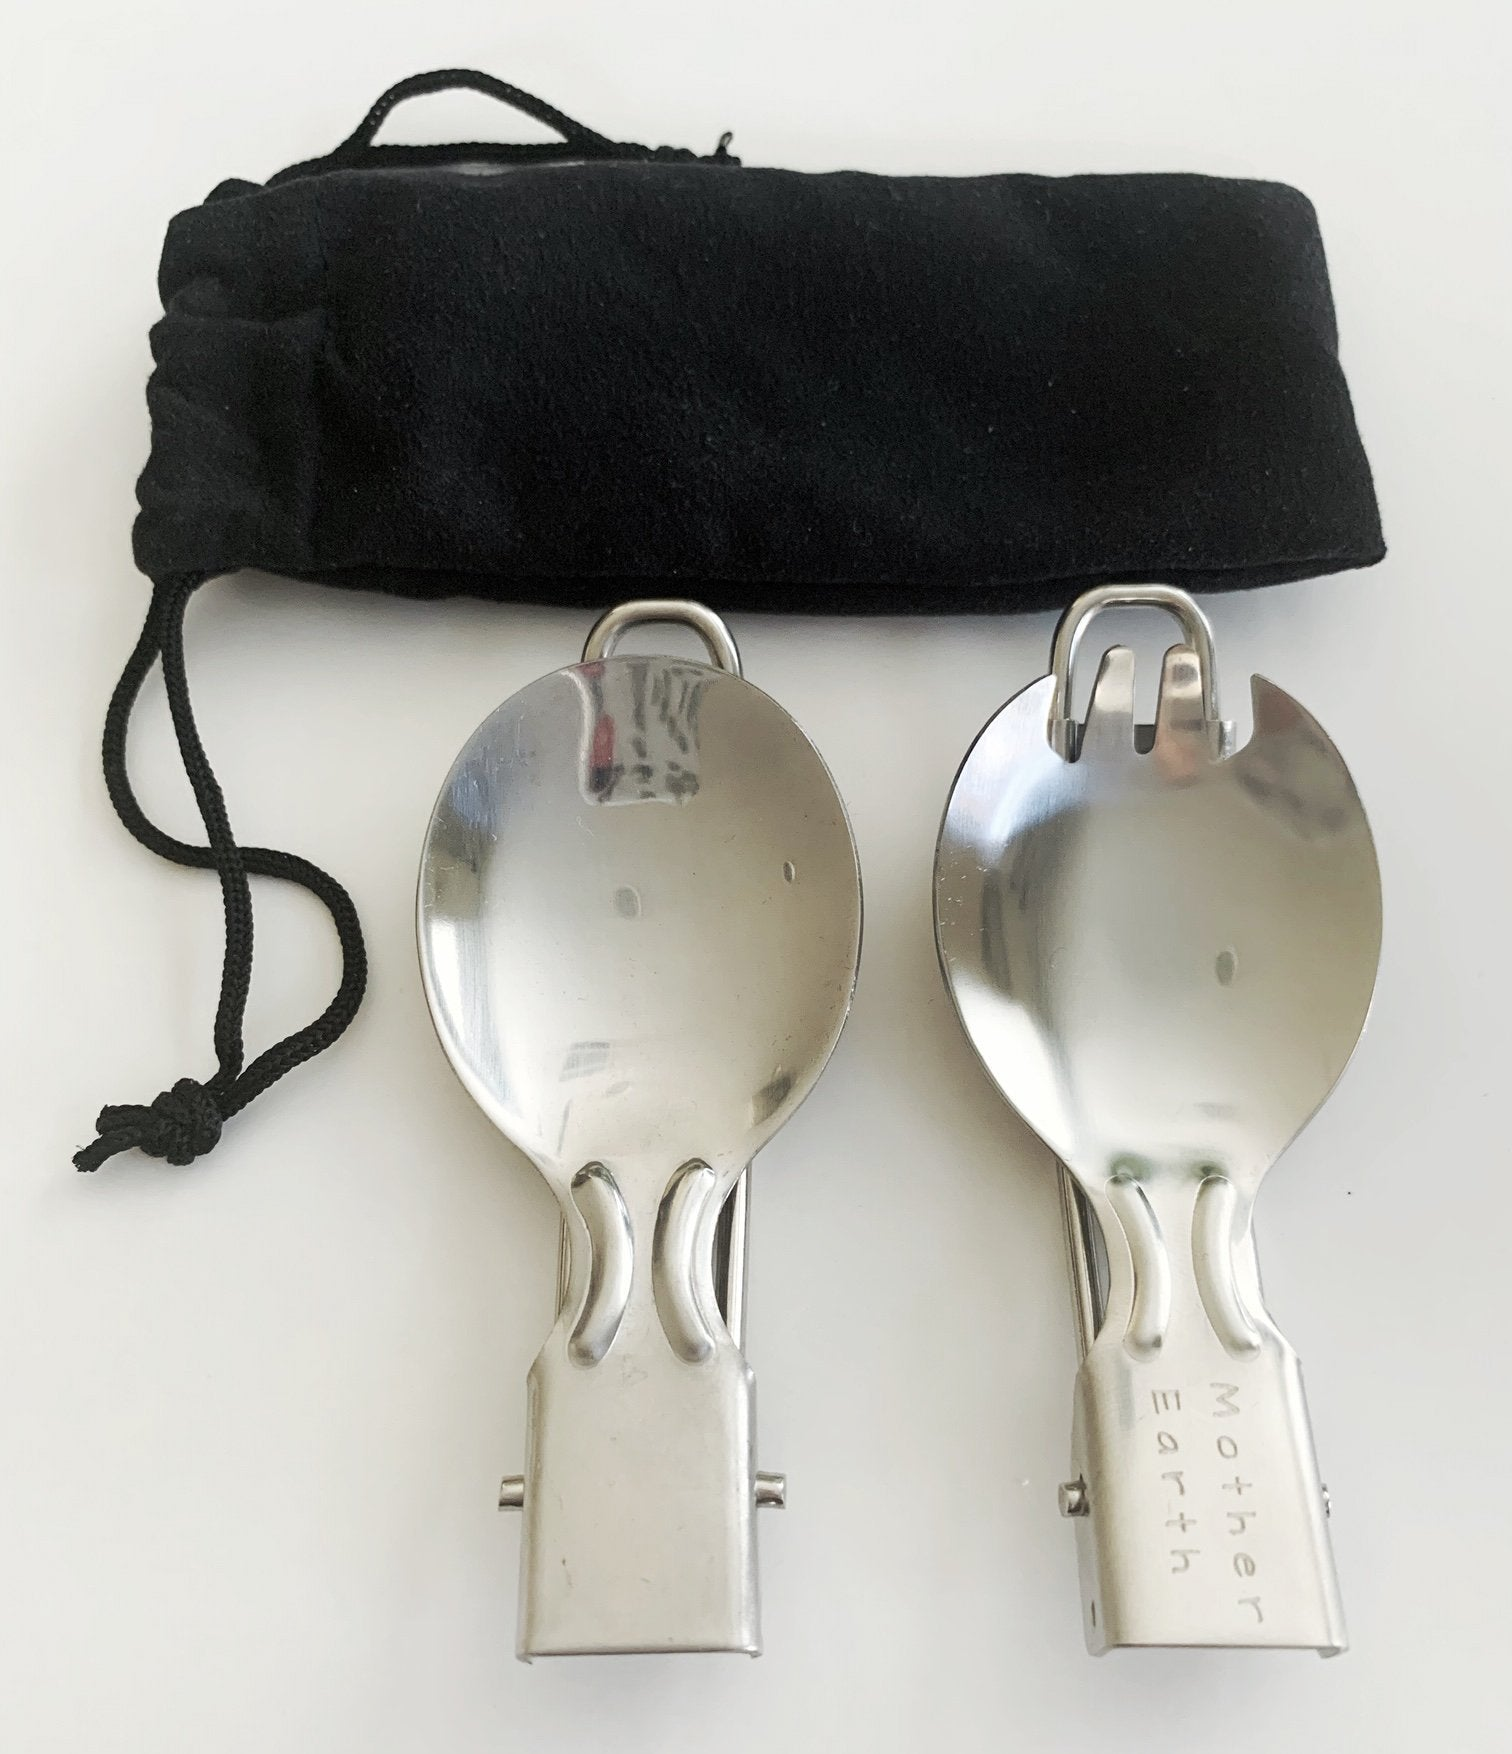 Stainless Steel Foldable Spork & Spoon Cutlery Set with travel pouch